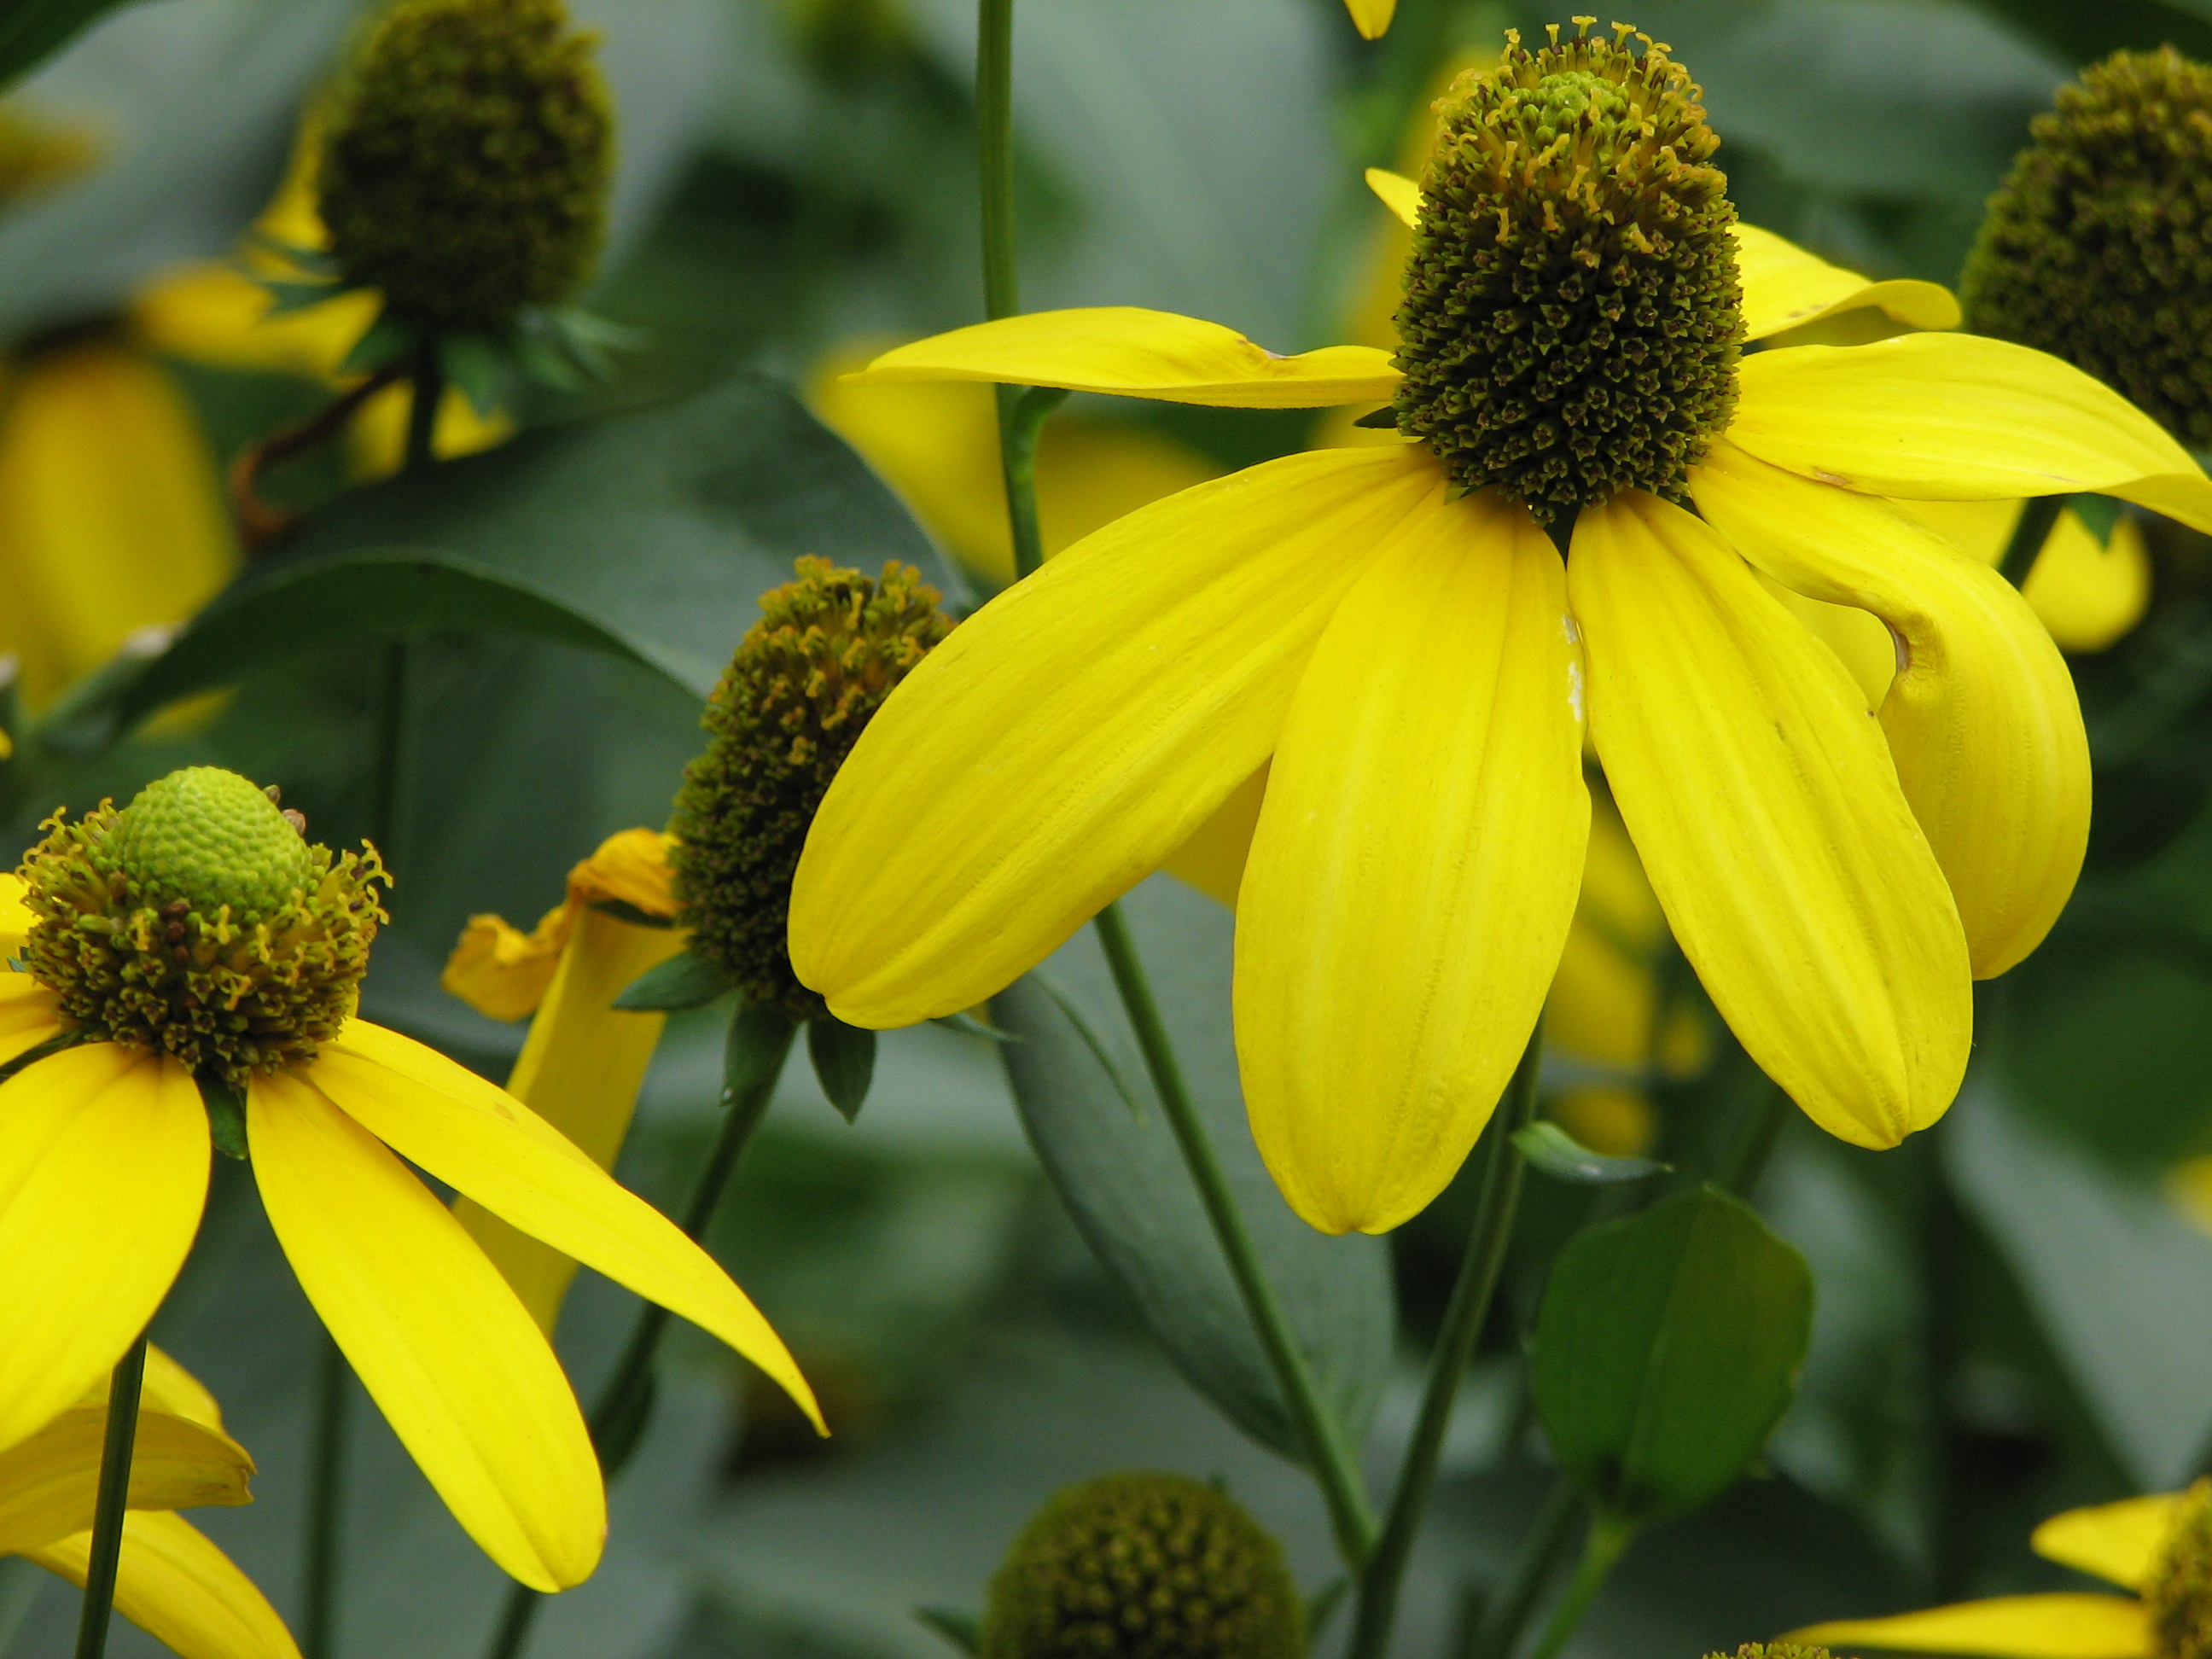 Rudbeckia laciniata in bloom